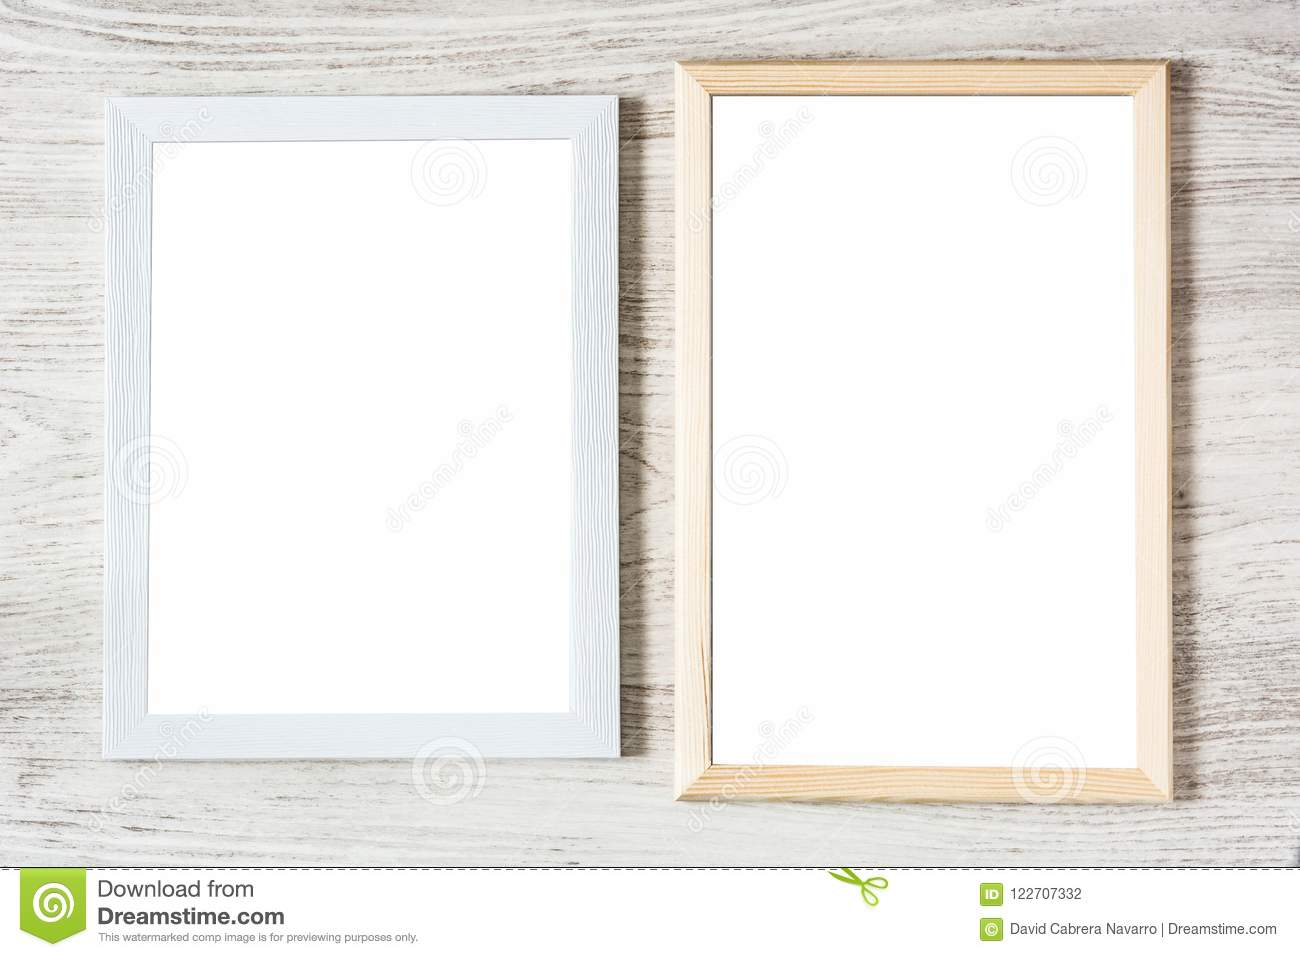 Frames Mockup On White Wooden Table. Stock Photo - Image of blank ...